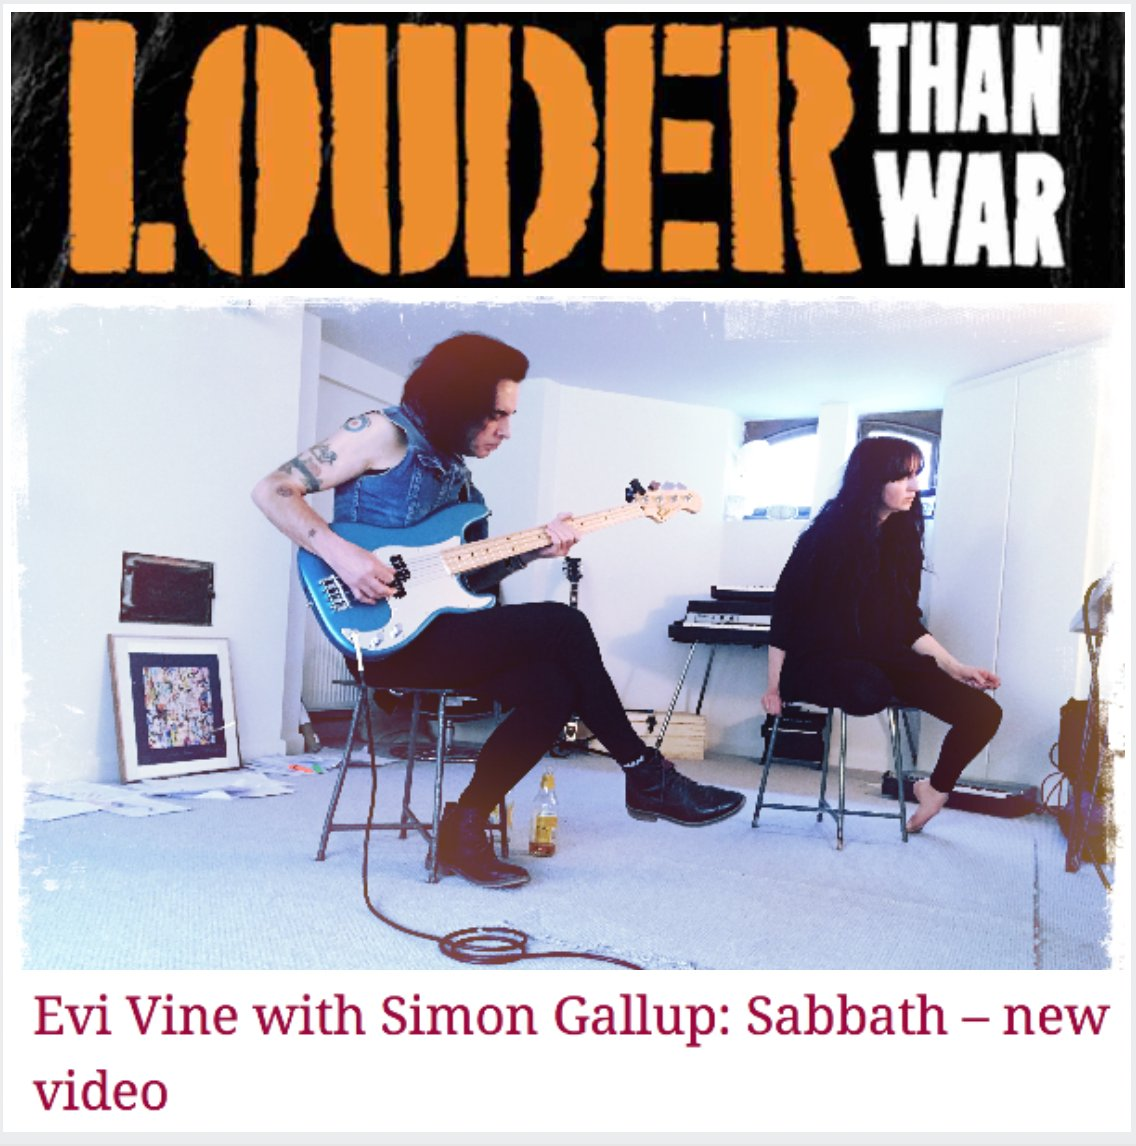 The new video for @EviVine 'Sabbath' featuring #SimonGallup of @TheCure and #PeterYates from Fields Of The Nephilim @BornGatekeeper, created by Craig Murray (known for his work with #Mogwai), is premiering in Britain's groundbreaking @LouderThanWar ~ http://goo.gl/FfW6fx